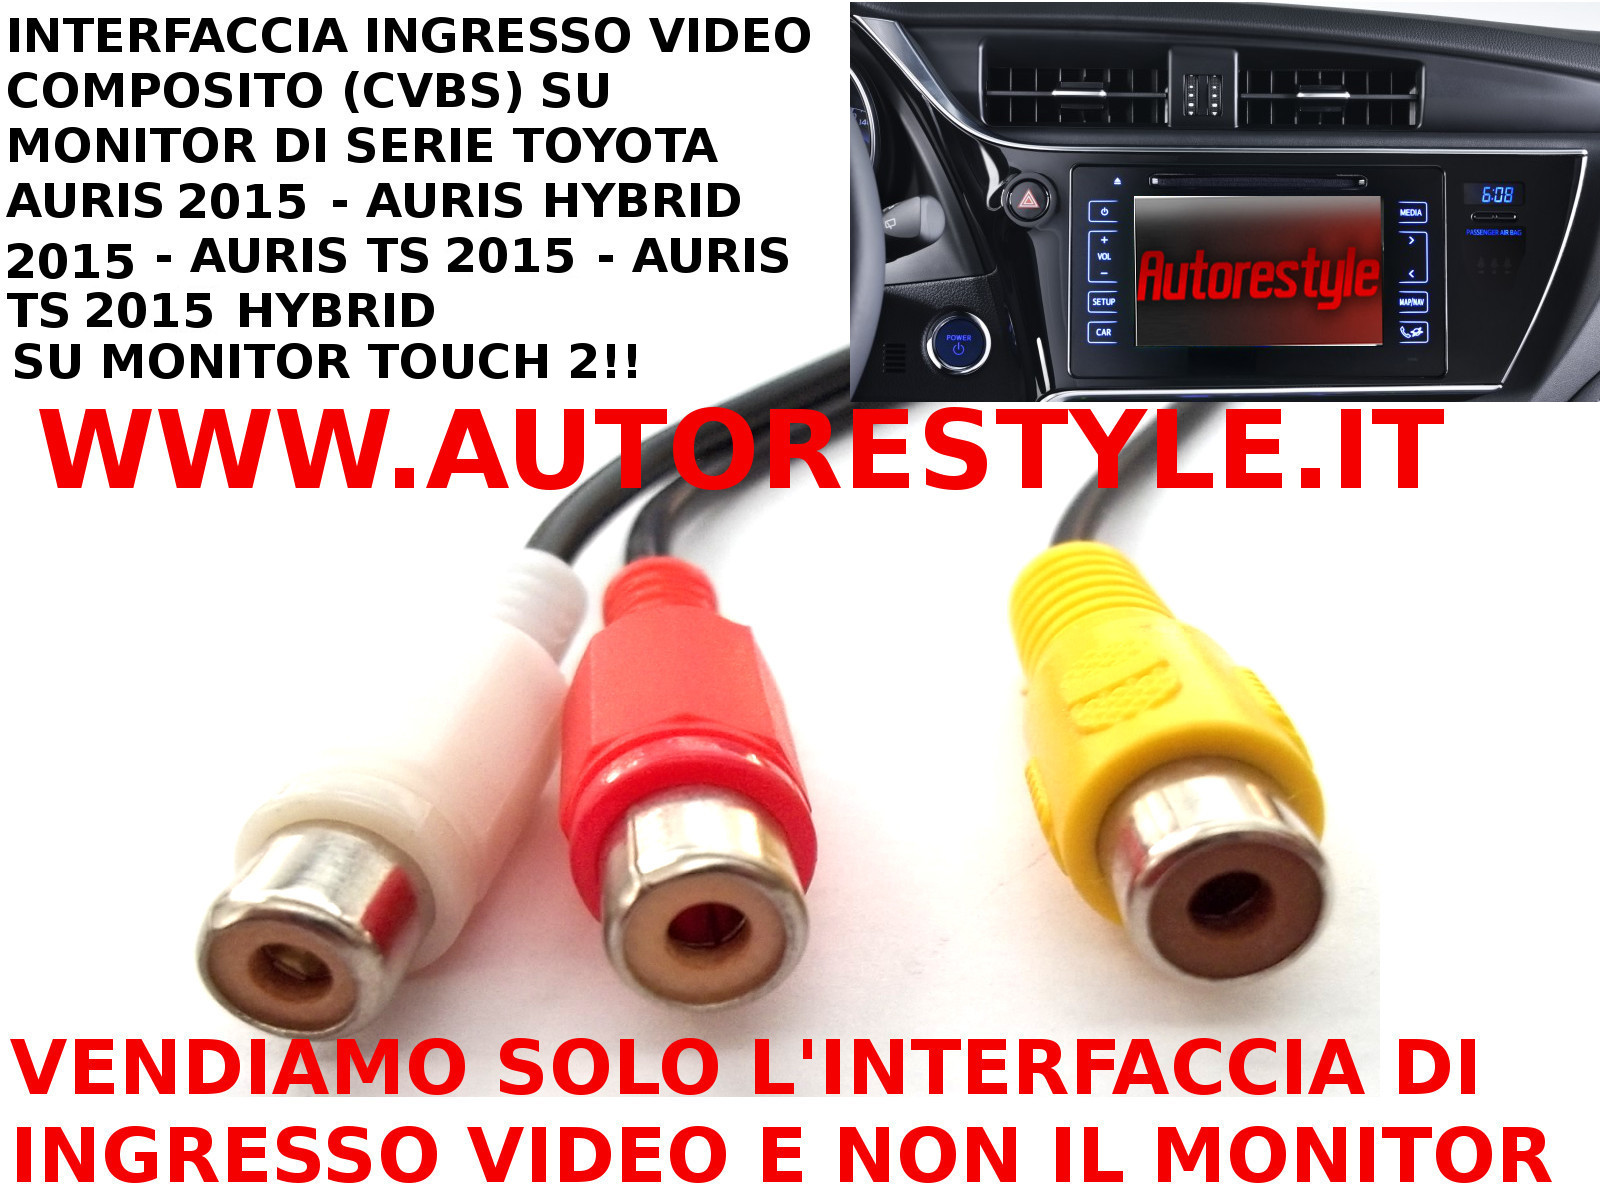 INTERFACCIA DI INGRESSO VIDEO COMPOSITO RCA MONITOR TOUCH 2 DI SERIE AURIS HYBRID 2015 AURIS TS HYBRID 2015 AURIS 2015